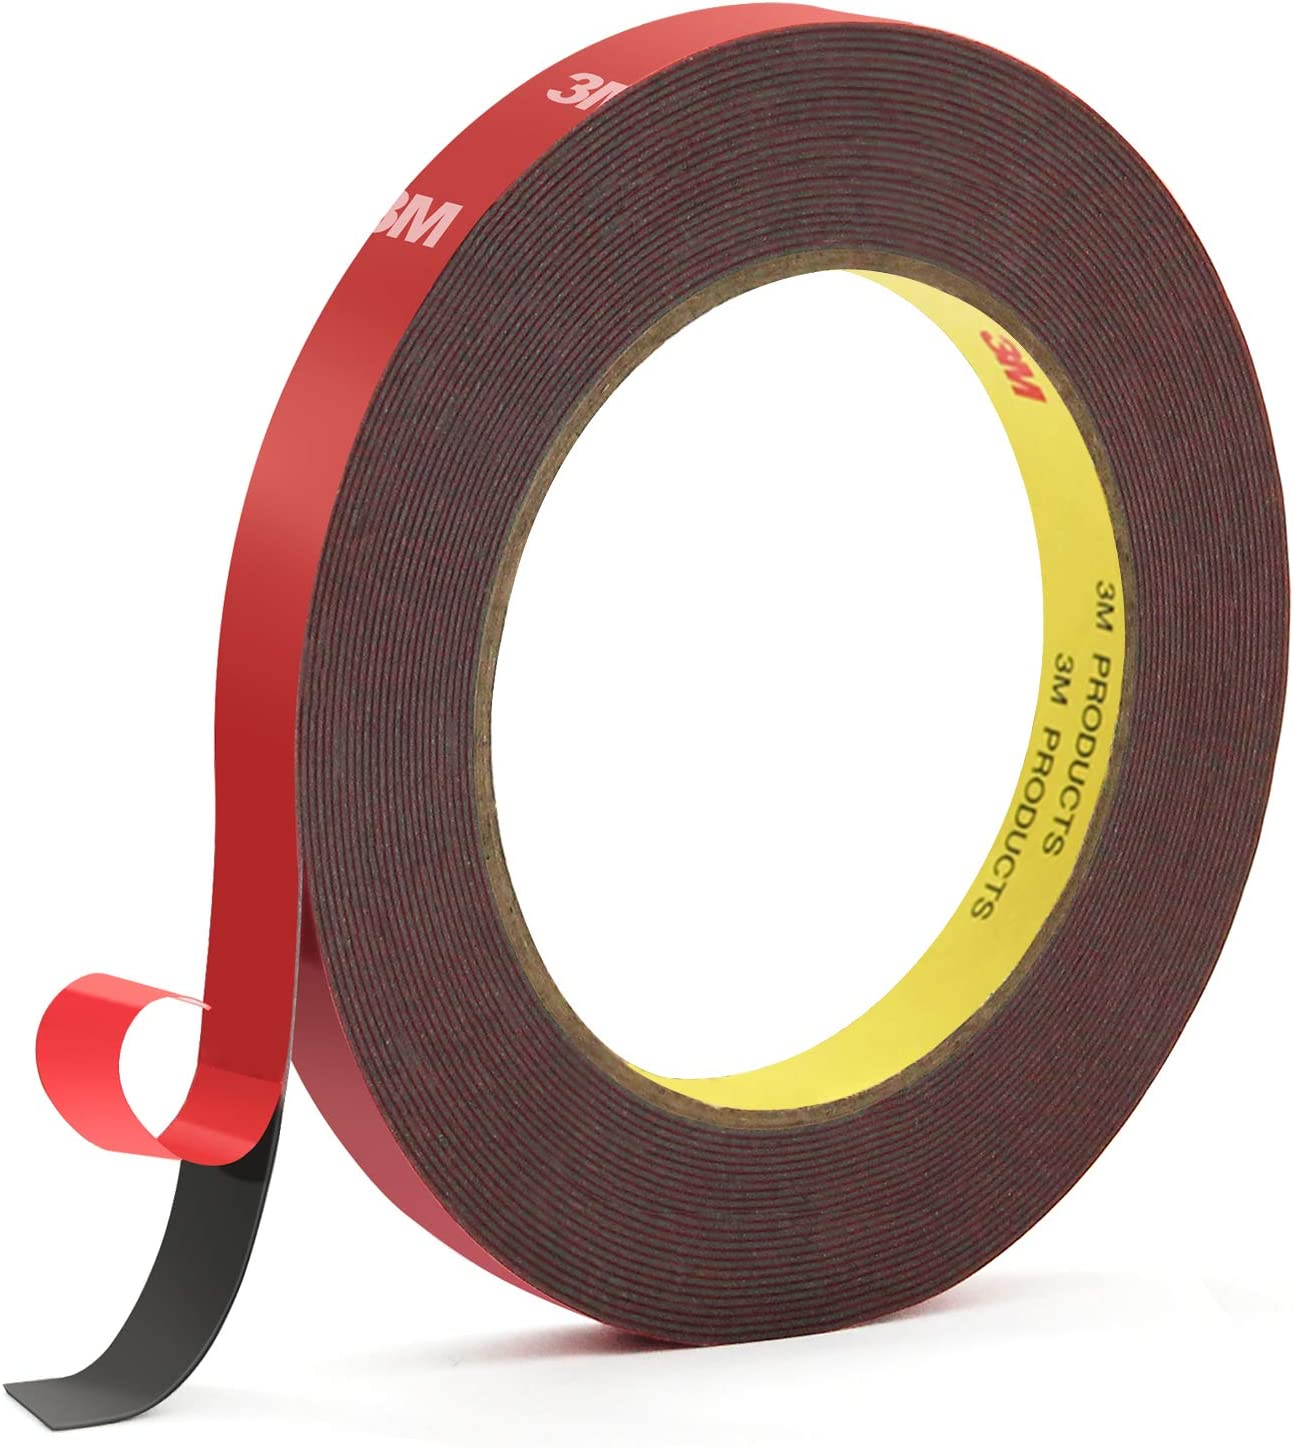 Double-sided tape 6mm x 50 metres by Craft Superstore